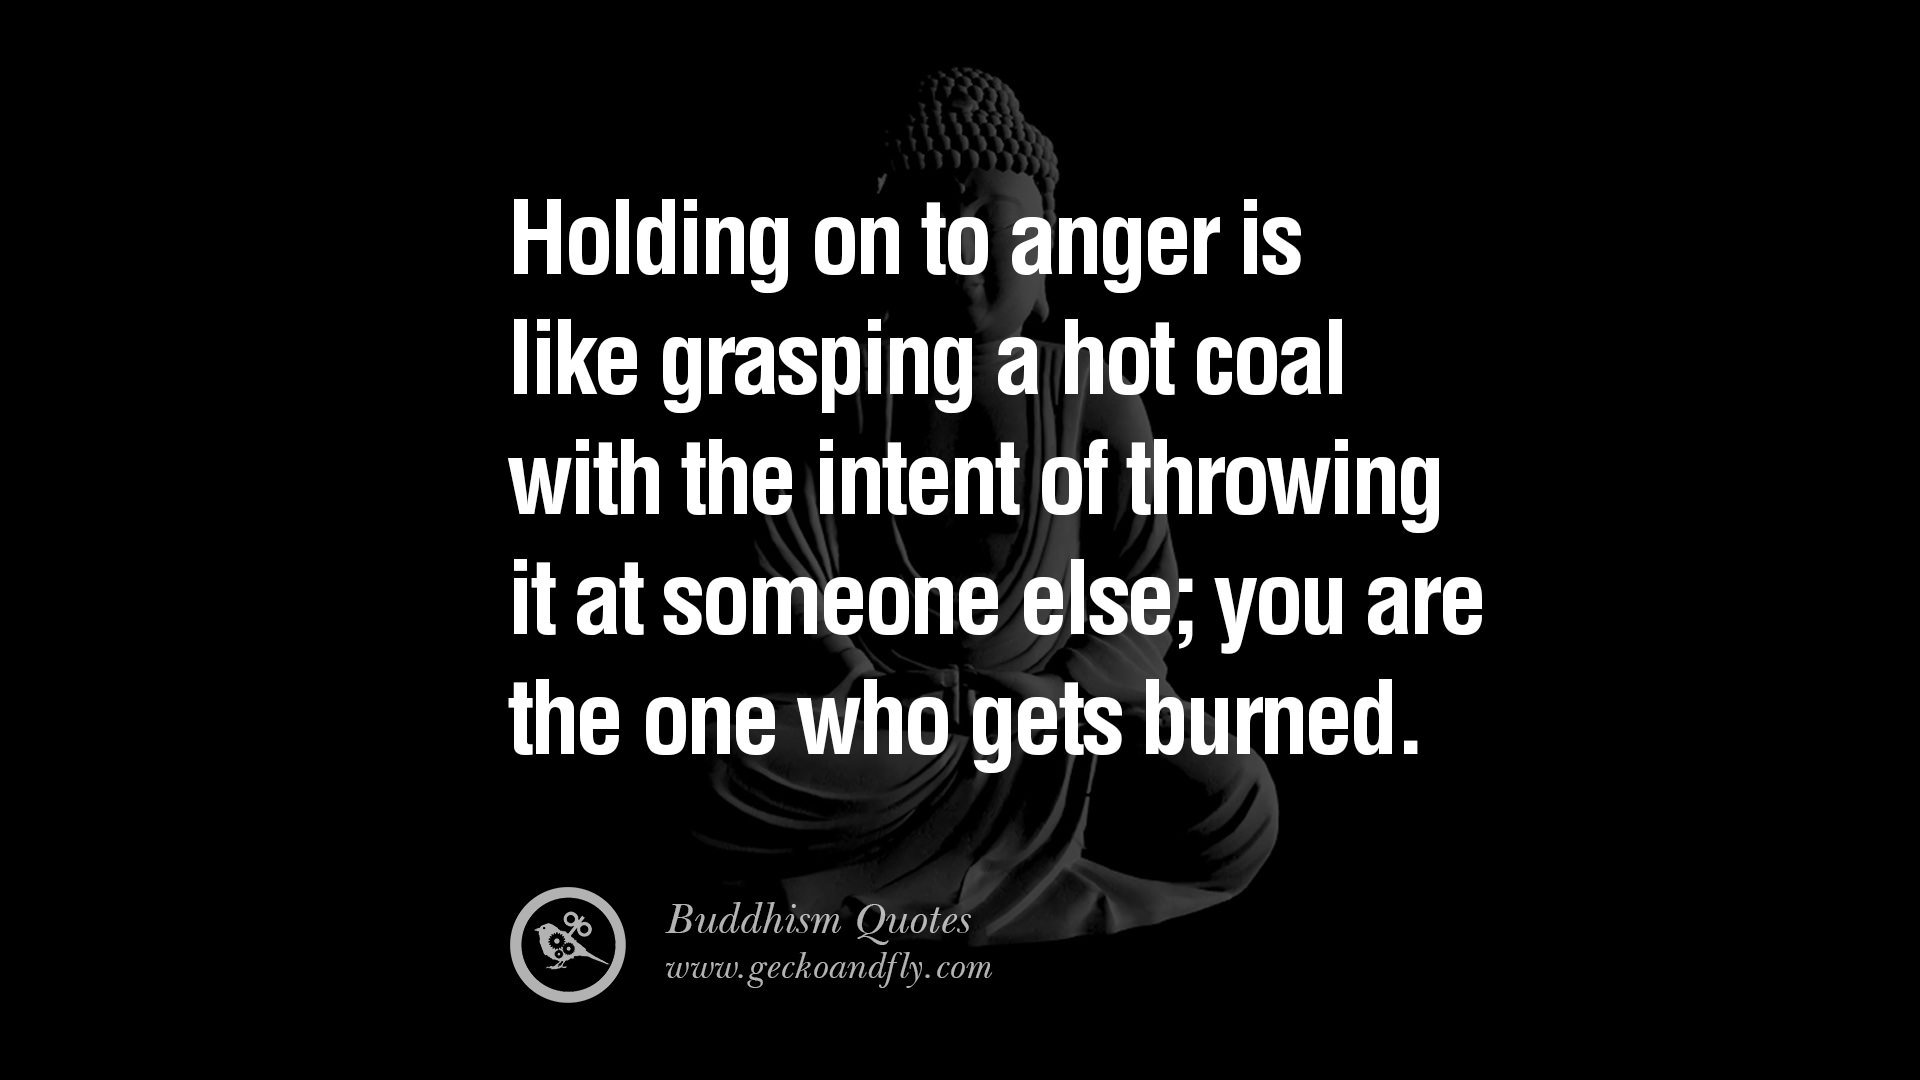 15 zen buddhism quotes on love anger management and salvation